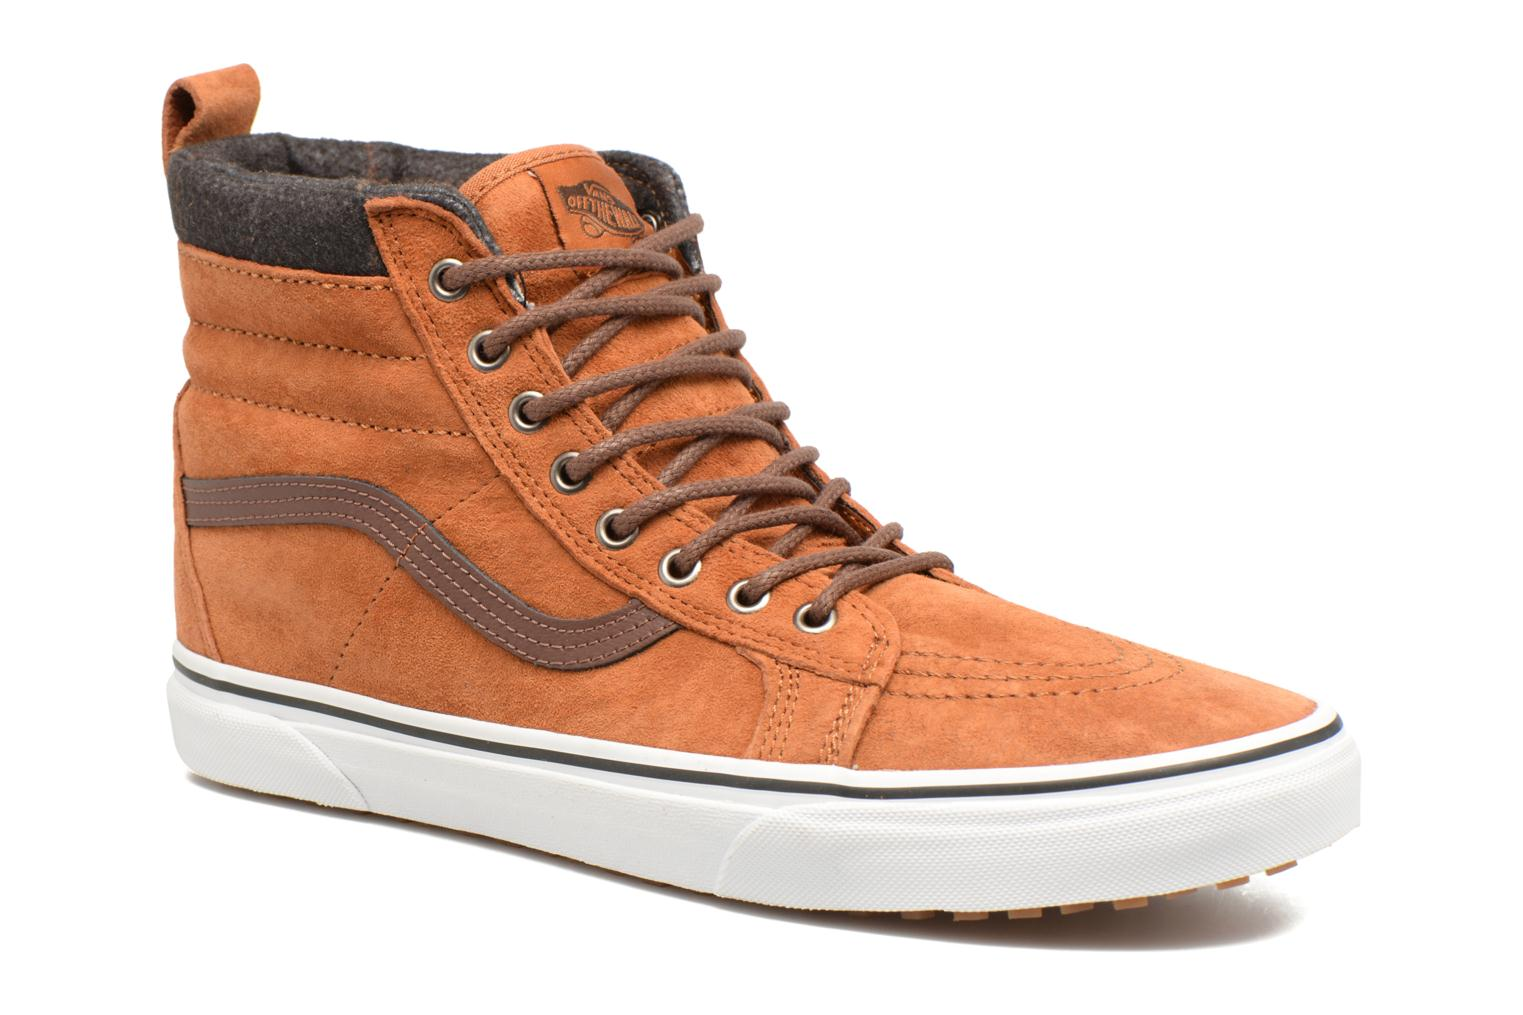 SK8-Hi MTE (Mte) glazed ginger / Plaid